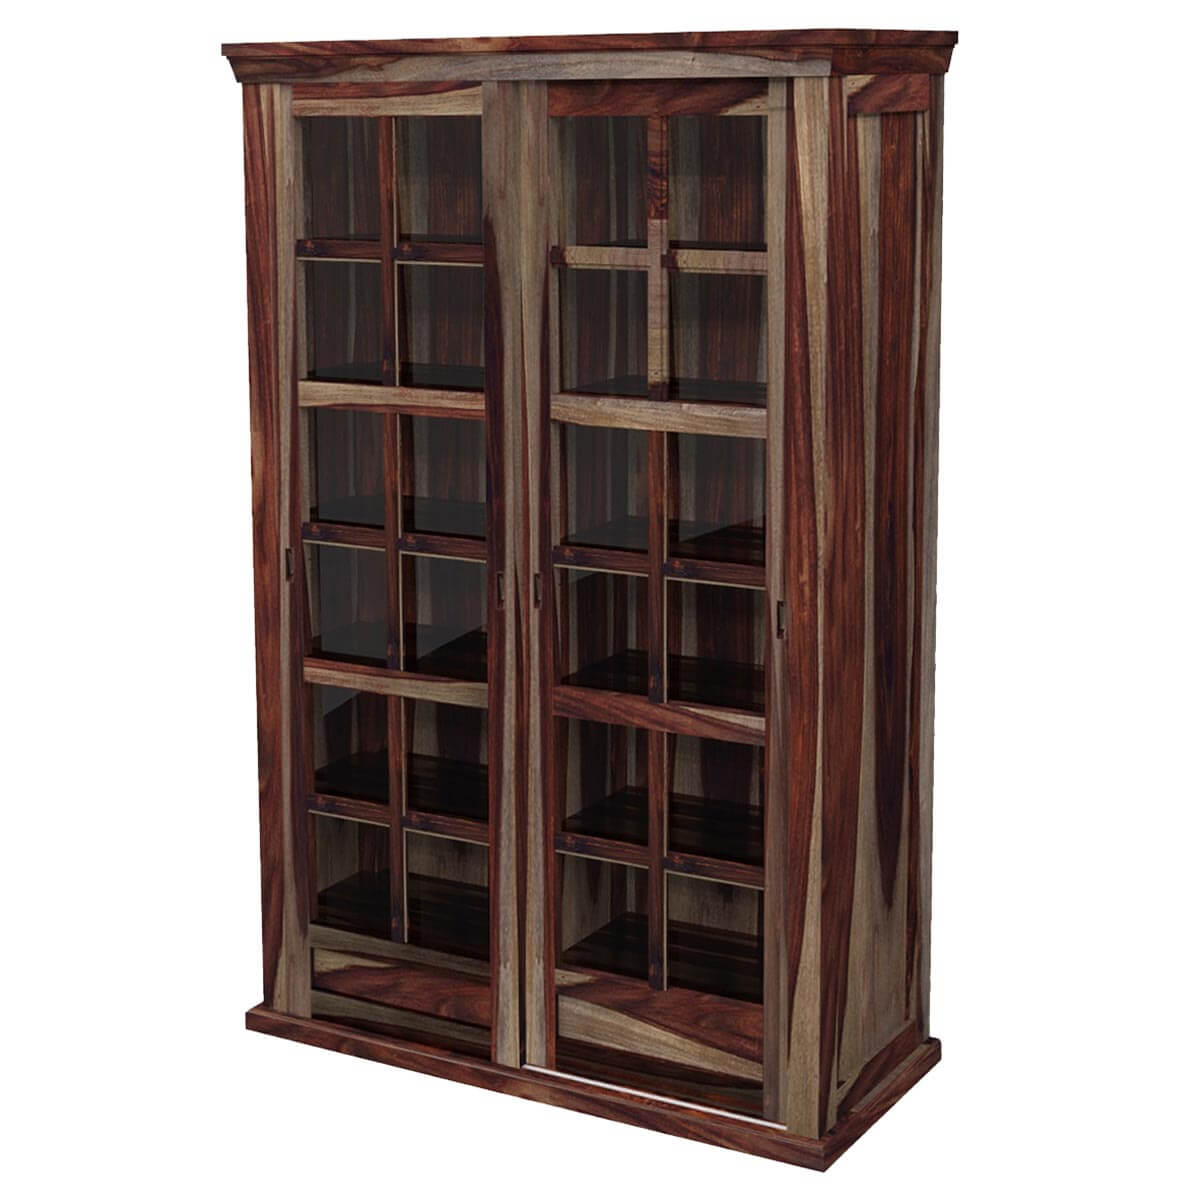 Wood Storage Cabinets With Doors ~ Solid wood rustic glass door large storage cabinet